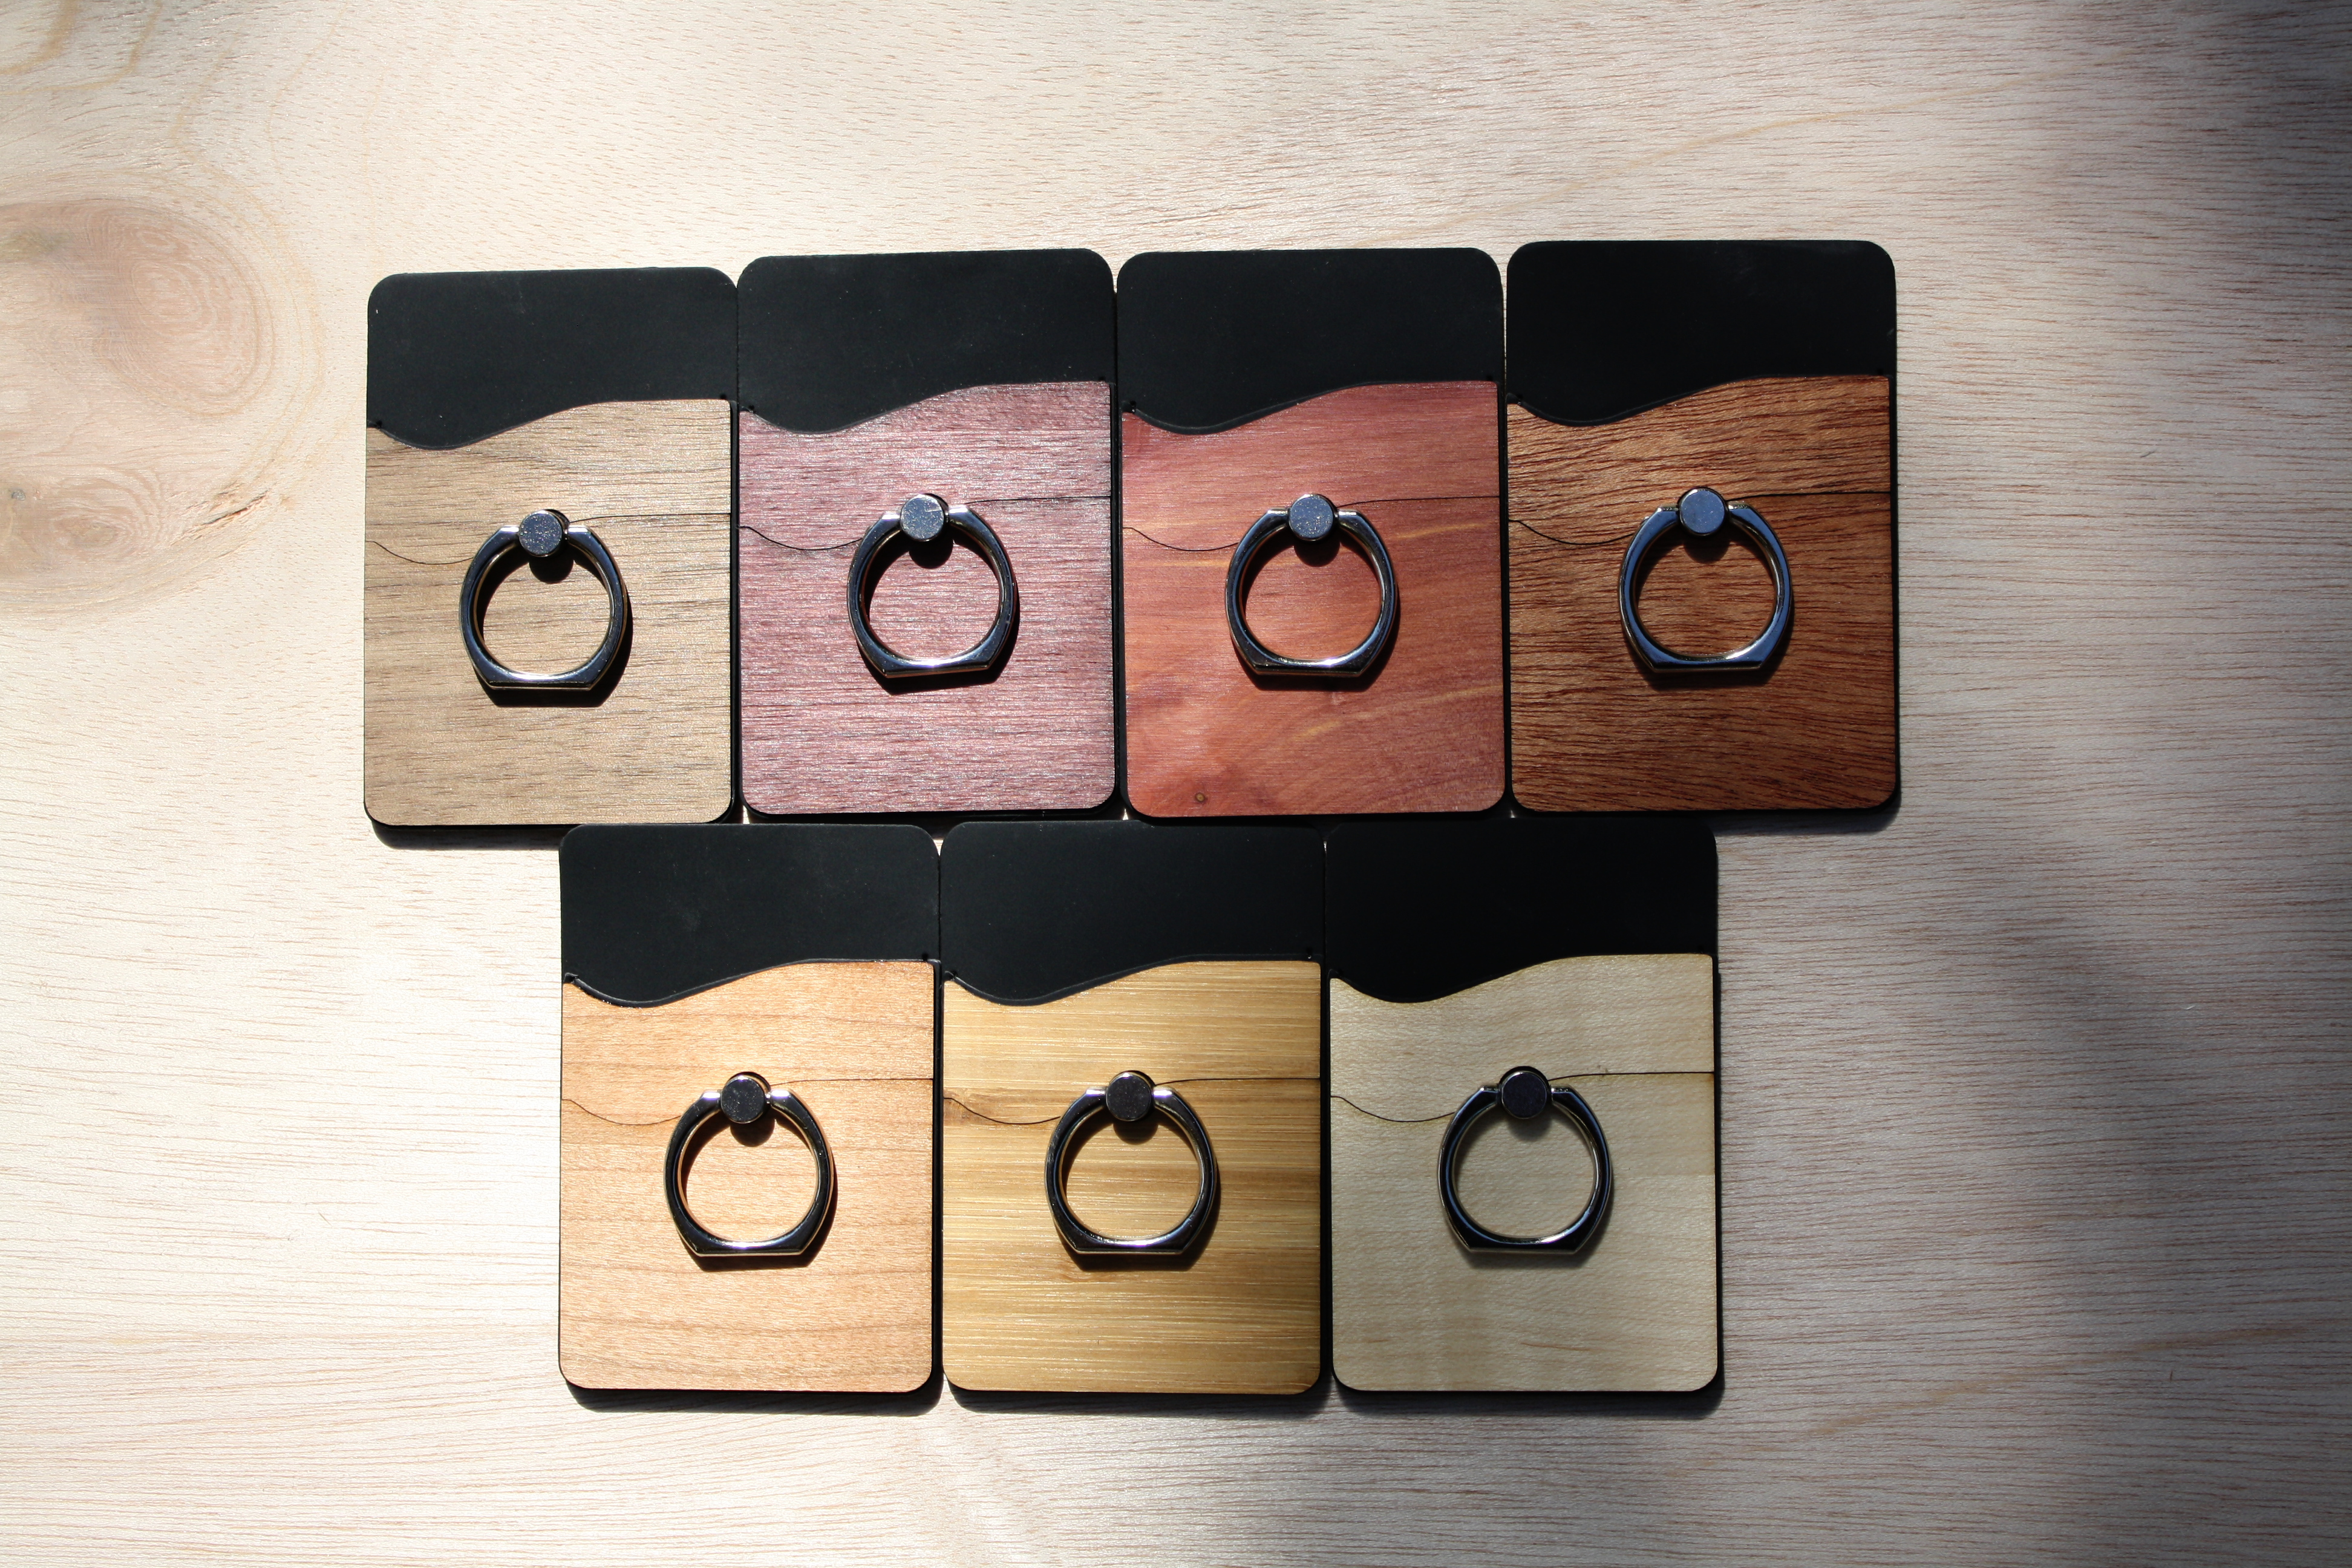 RNGR Wallet ring phone holder covered in beautiful wood in 7 different species